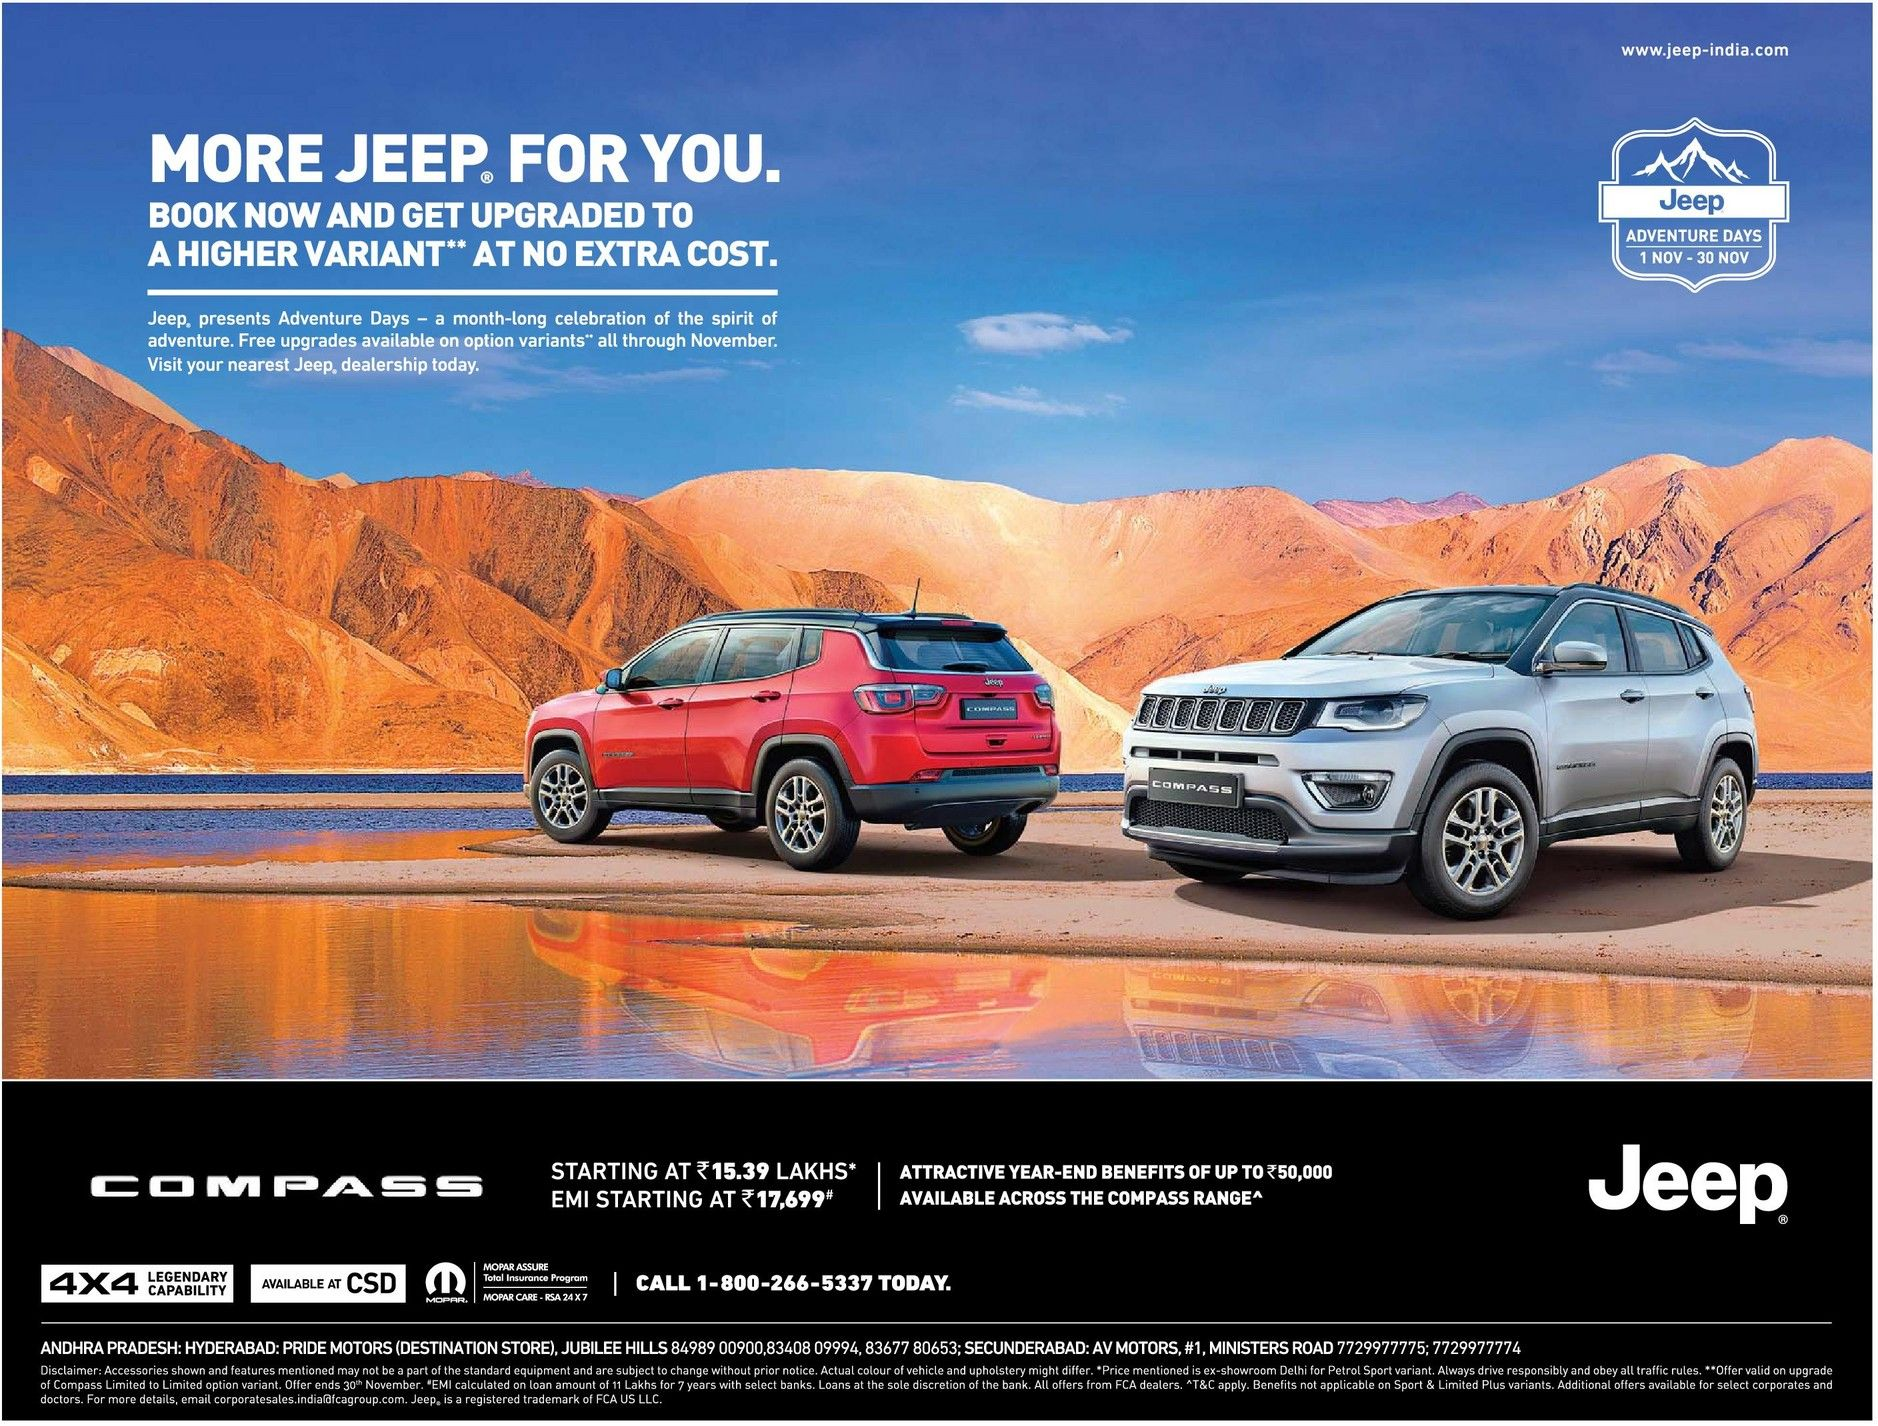 Jeep Compass Cars Book Now And Get Upgraded Ad Eenadu Hyderabad